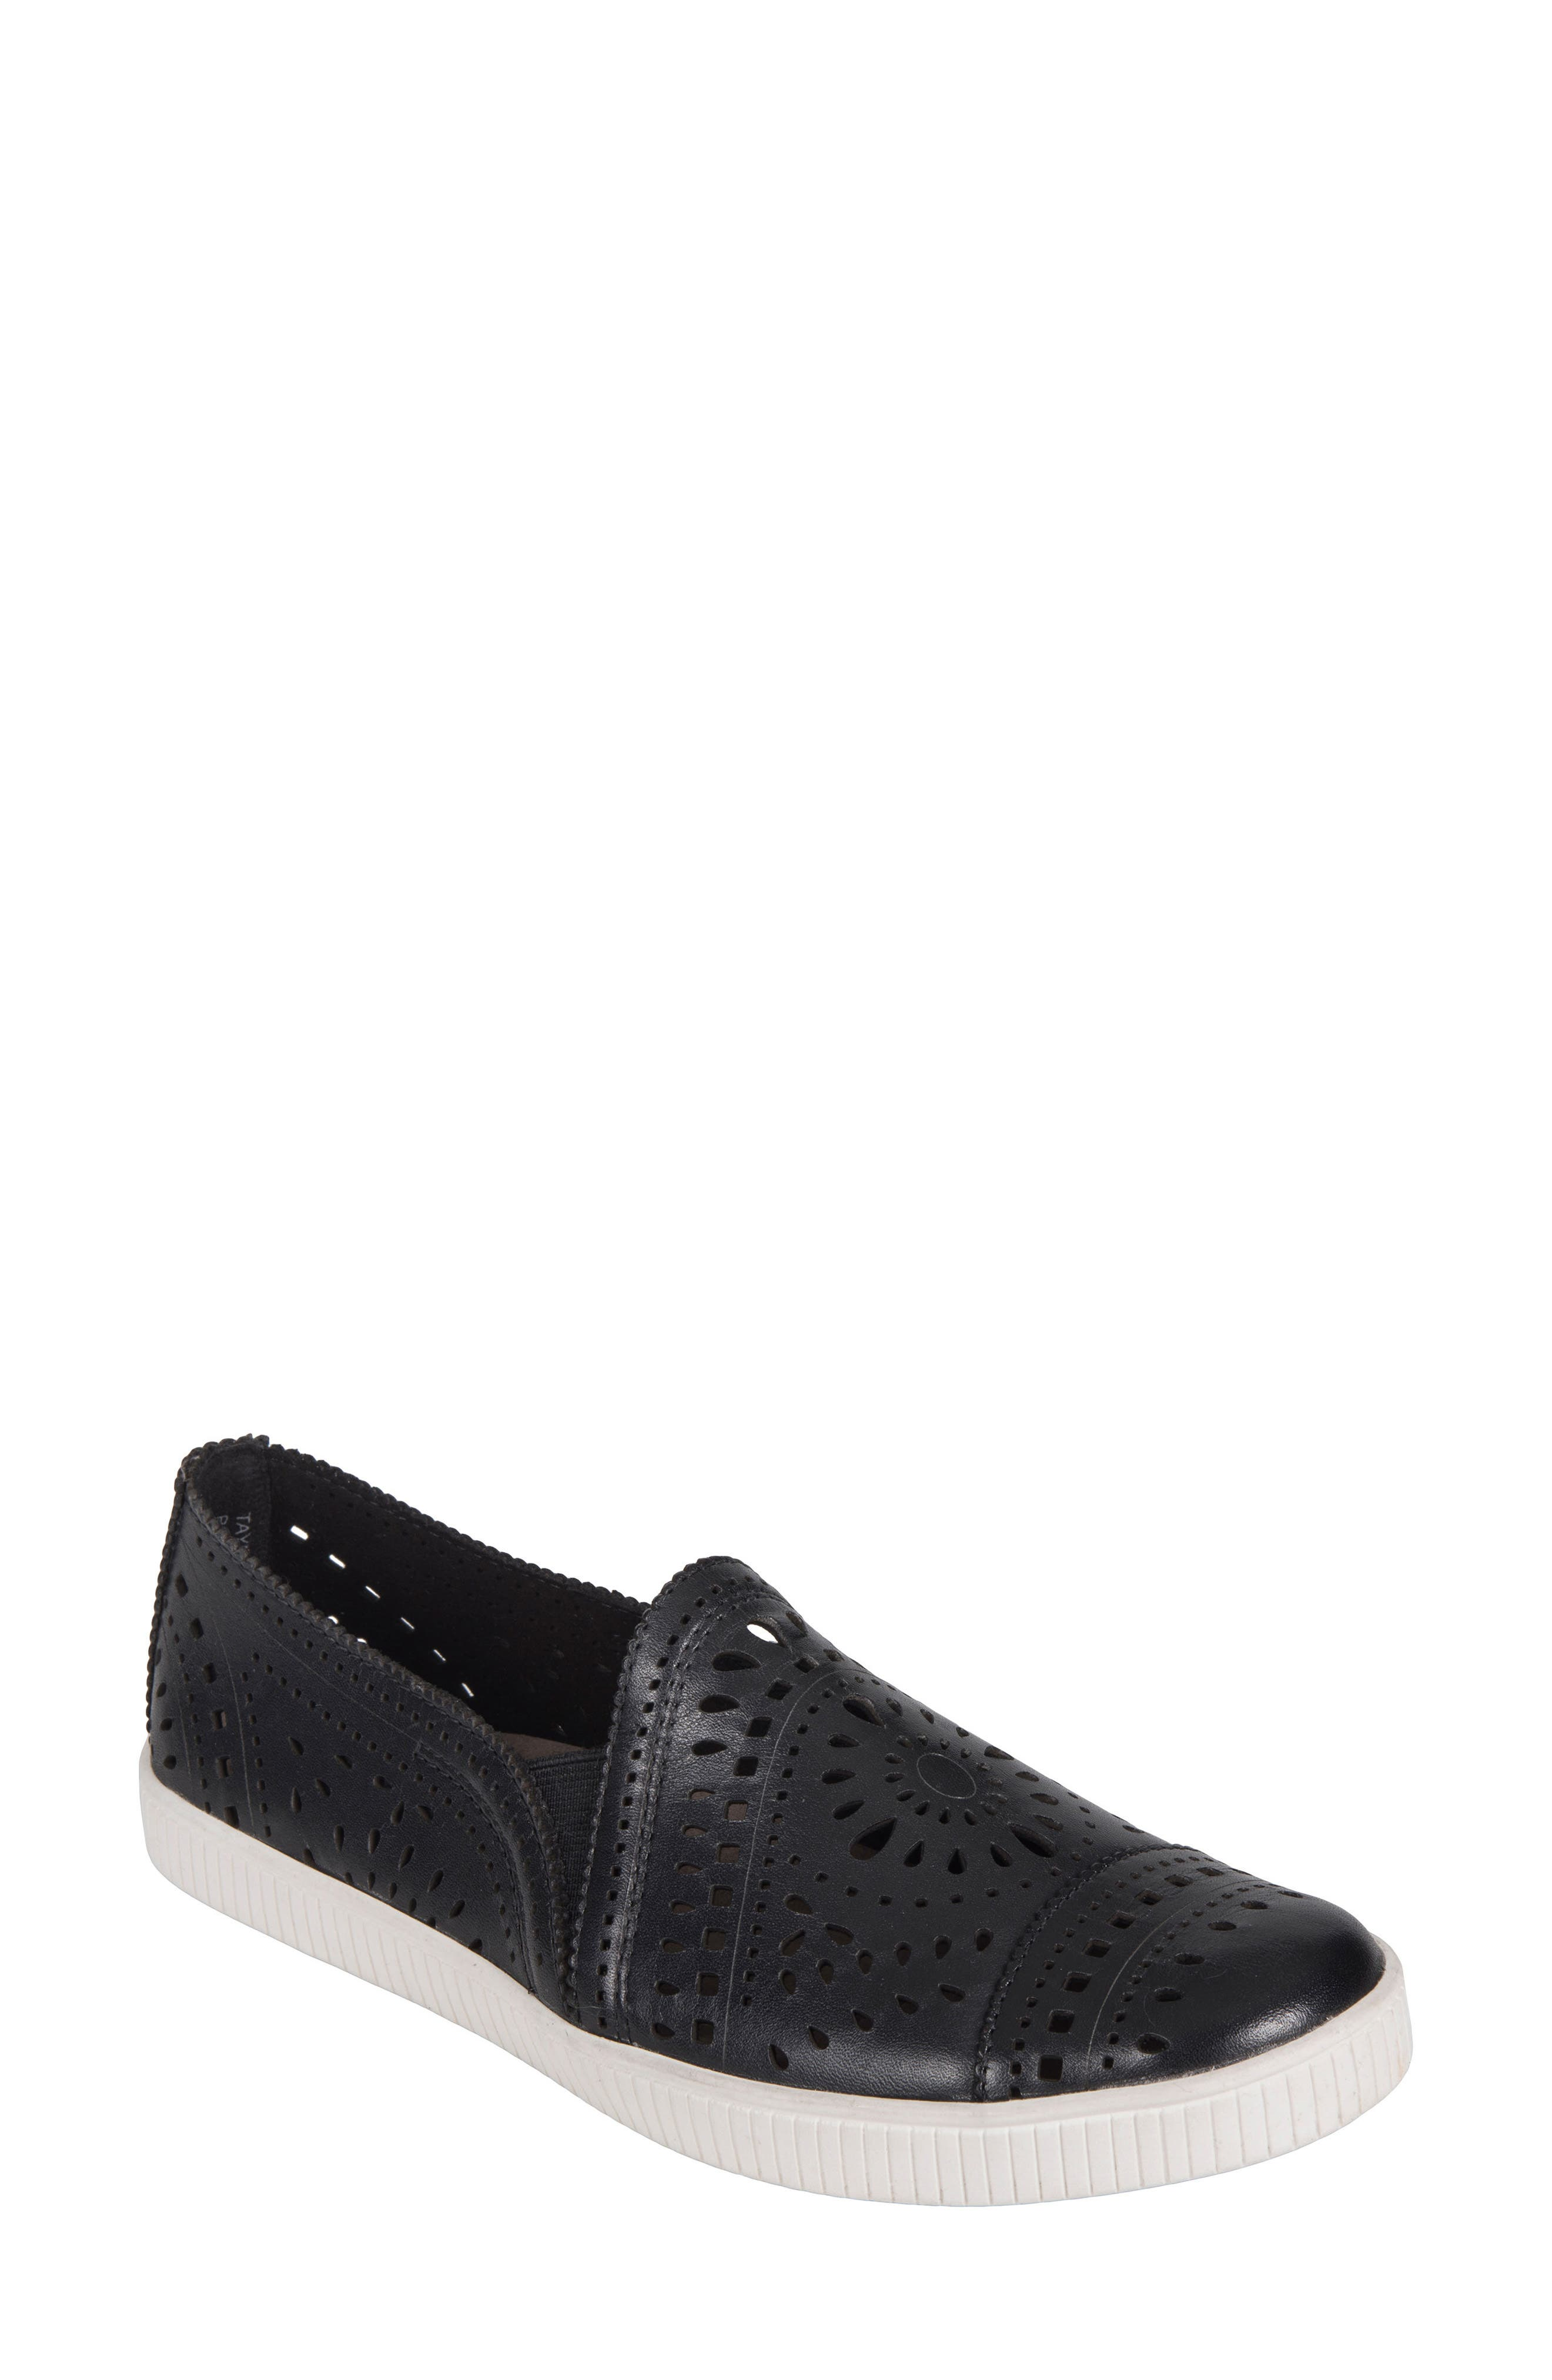 Tayberry Perforated Slip-On Sneaker,                         Main,                         color, 001